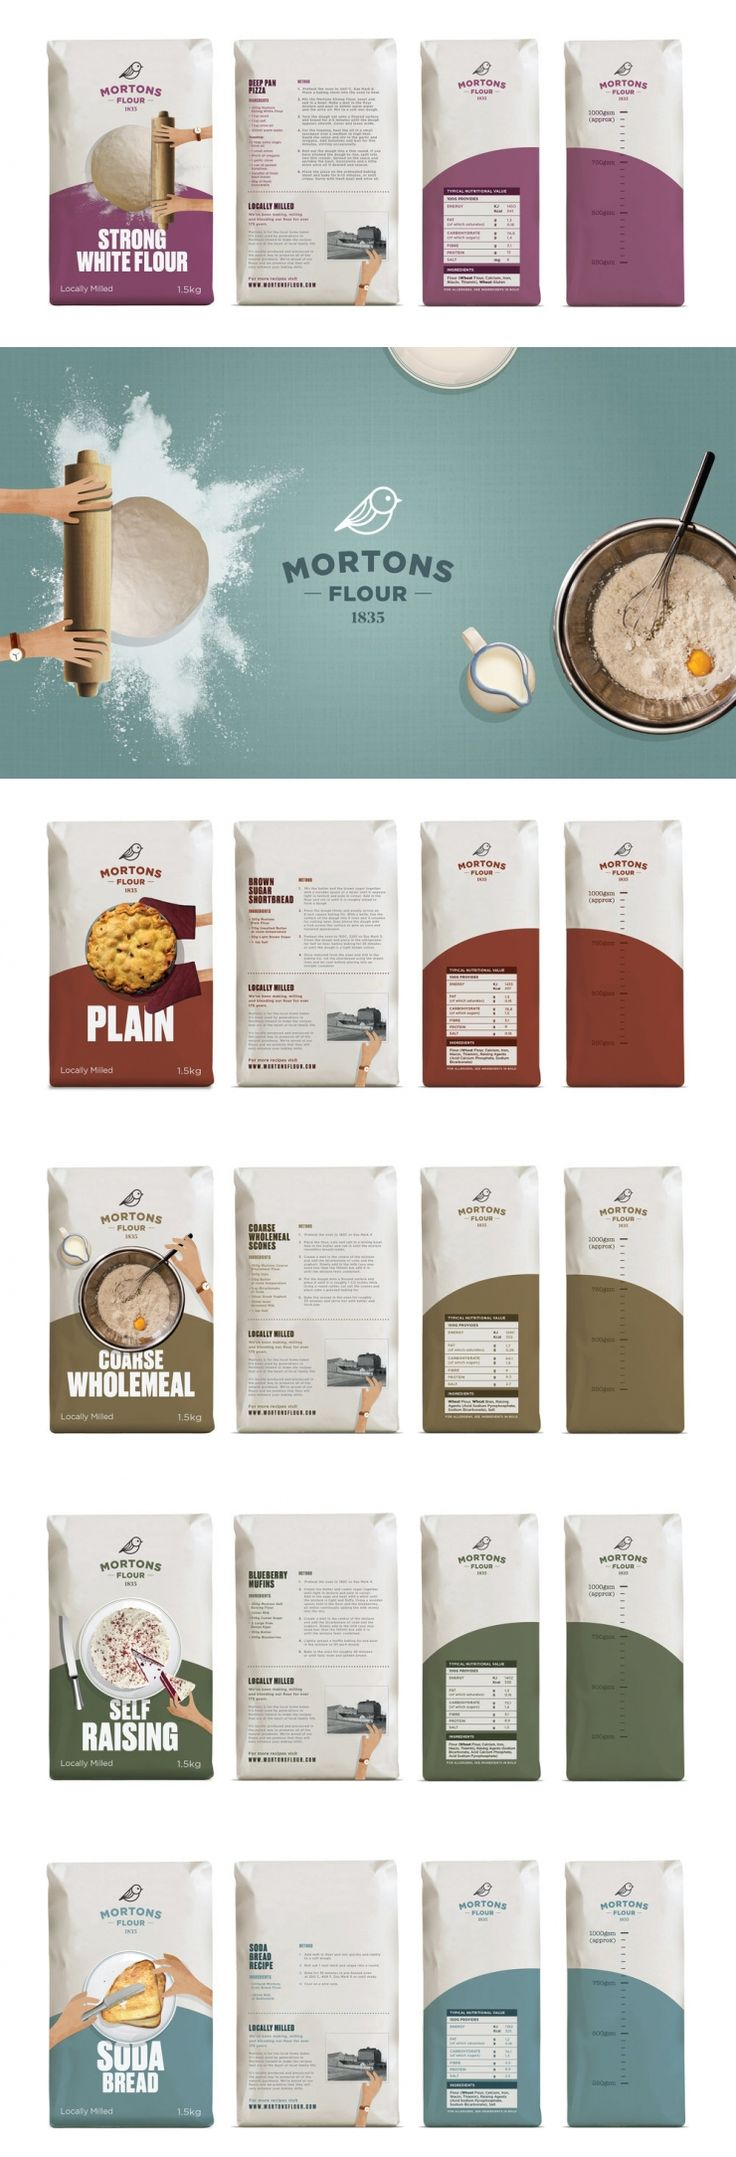 Rediscover The Joy of Baking With Mortons Flour — The Dieline | Packaging & Branding Design & Innovation News